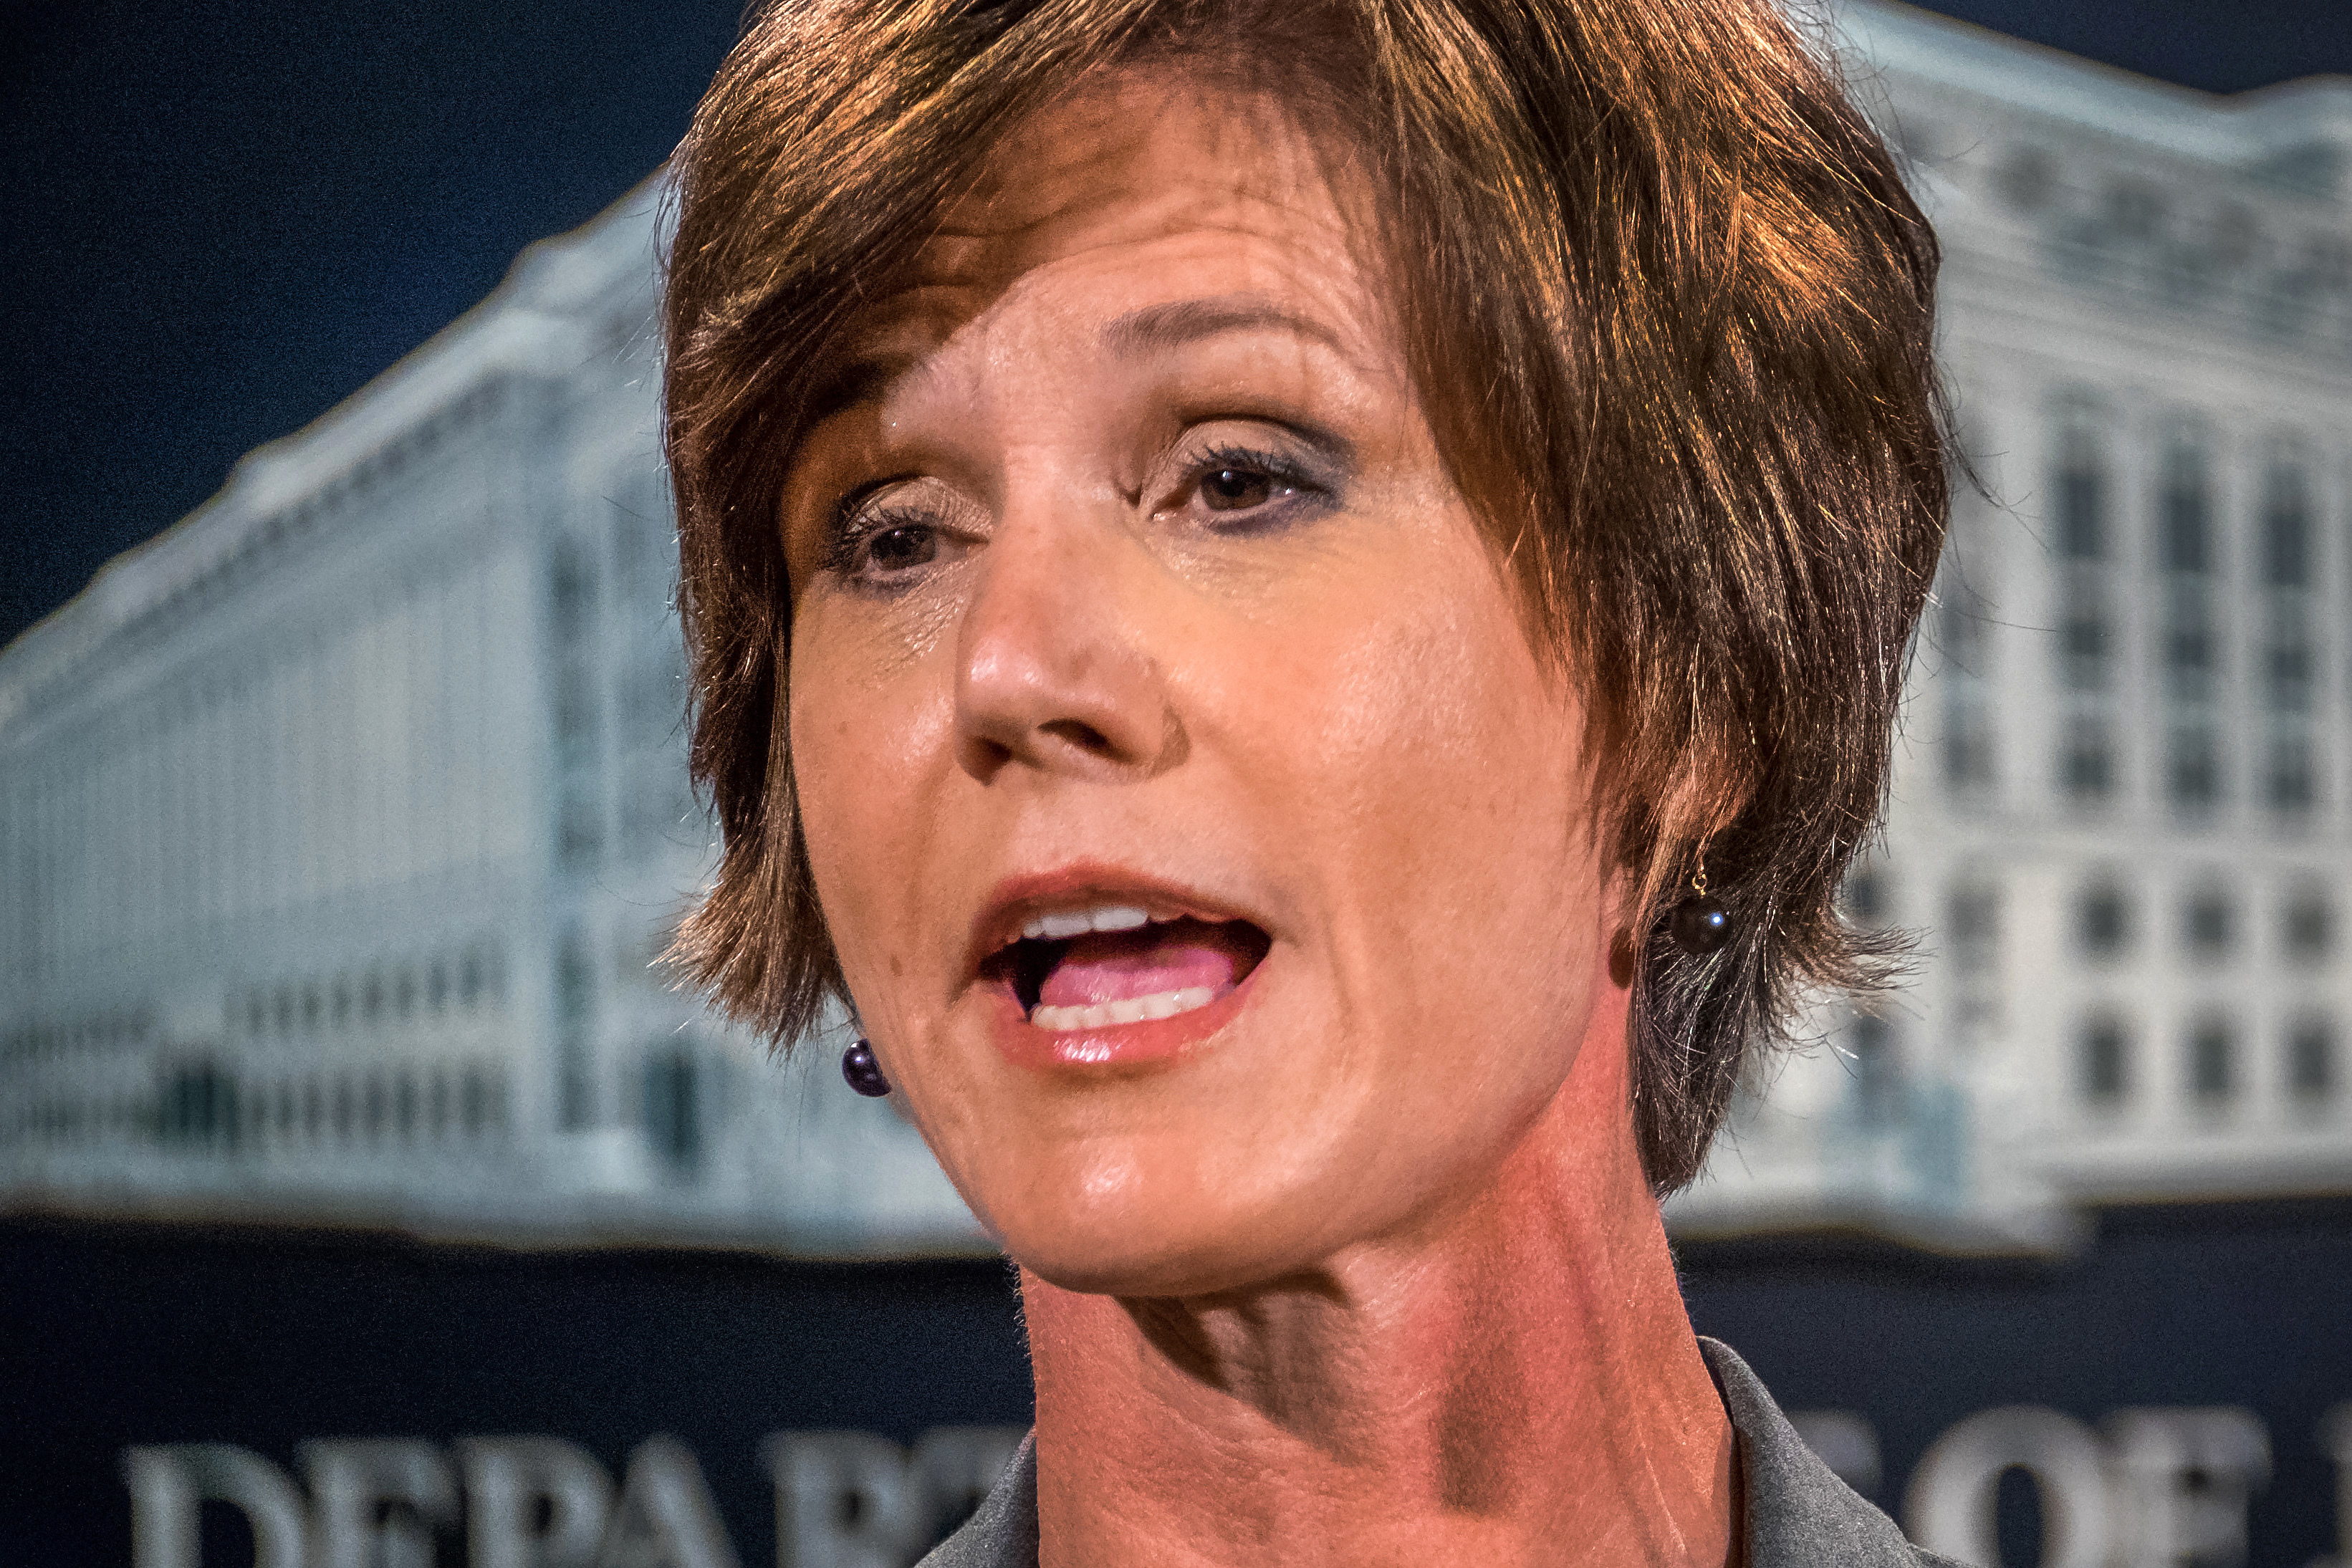 Image: Acting Attorney General Sally Yates